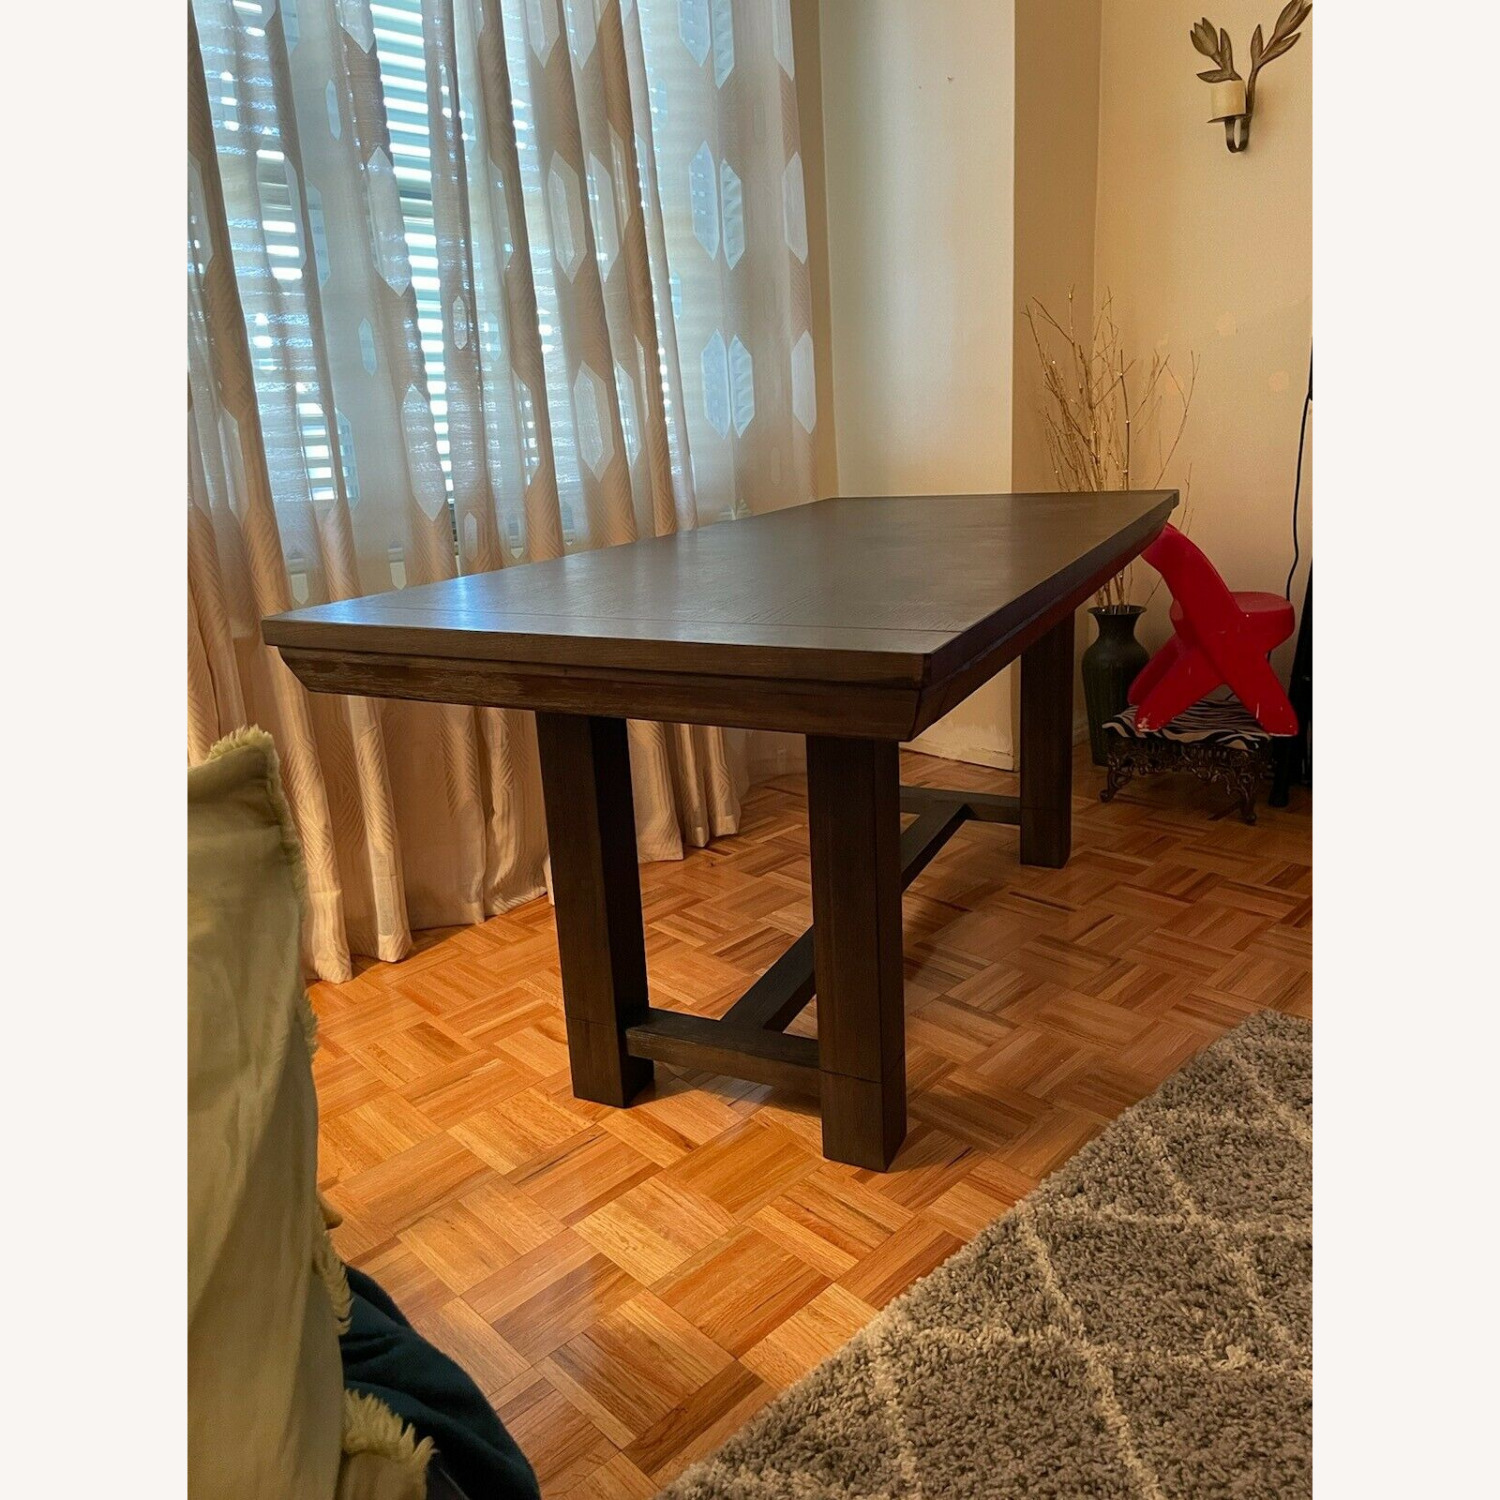 Ashley Furniture Dellbeck Extendable Dining Table - image-6